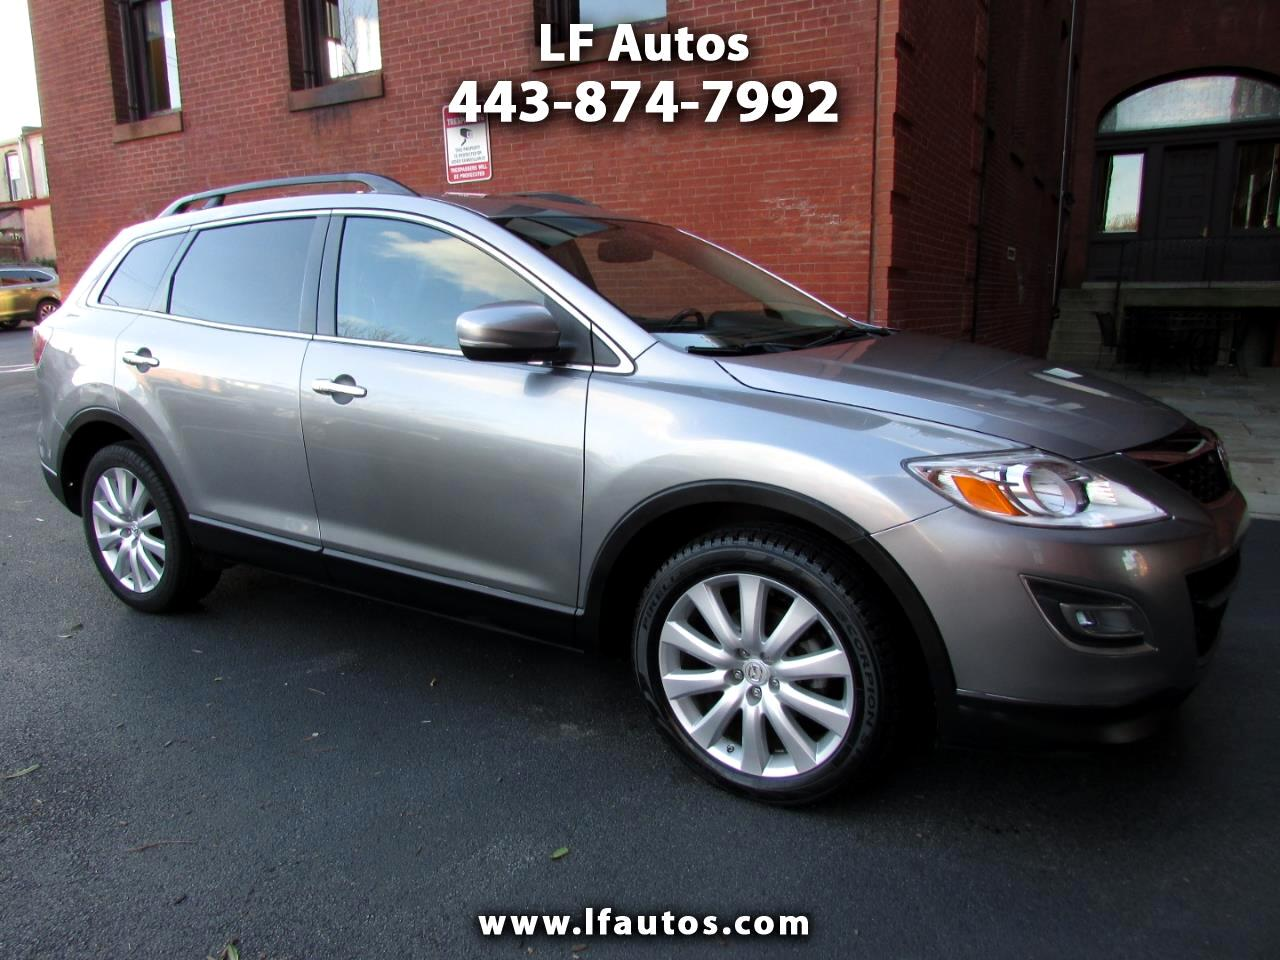 Used 2010 Mazda CX-9 AWD 4dr Grand Touring For Sale In